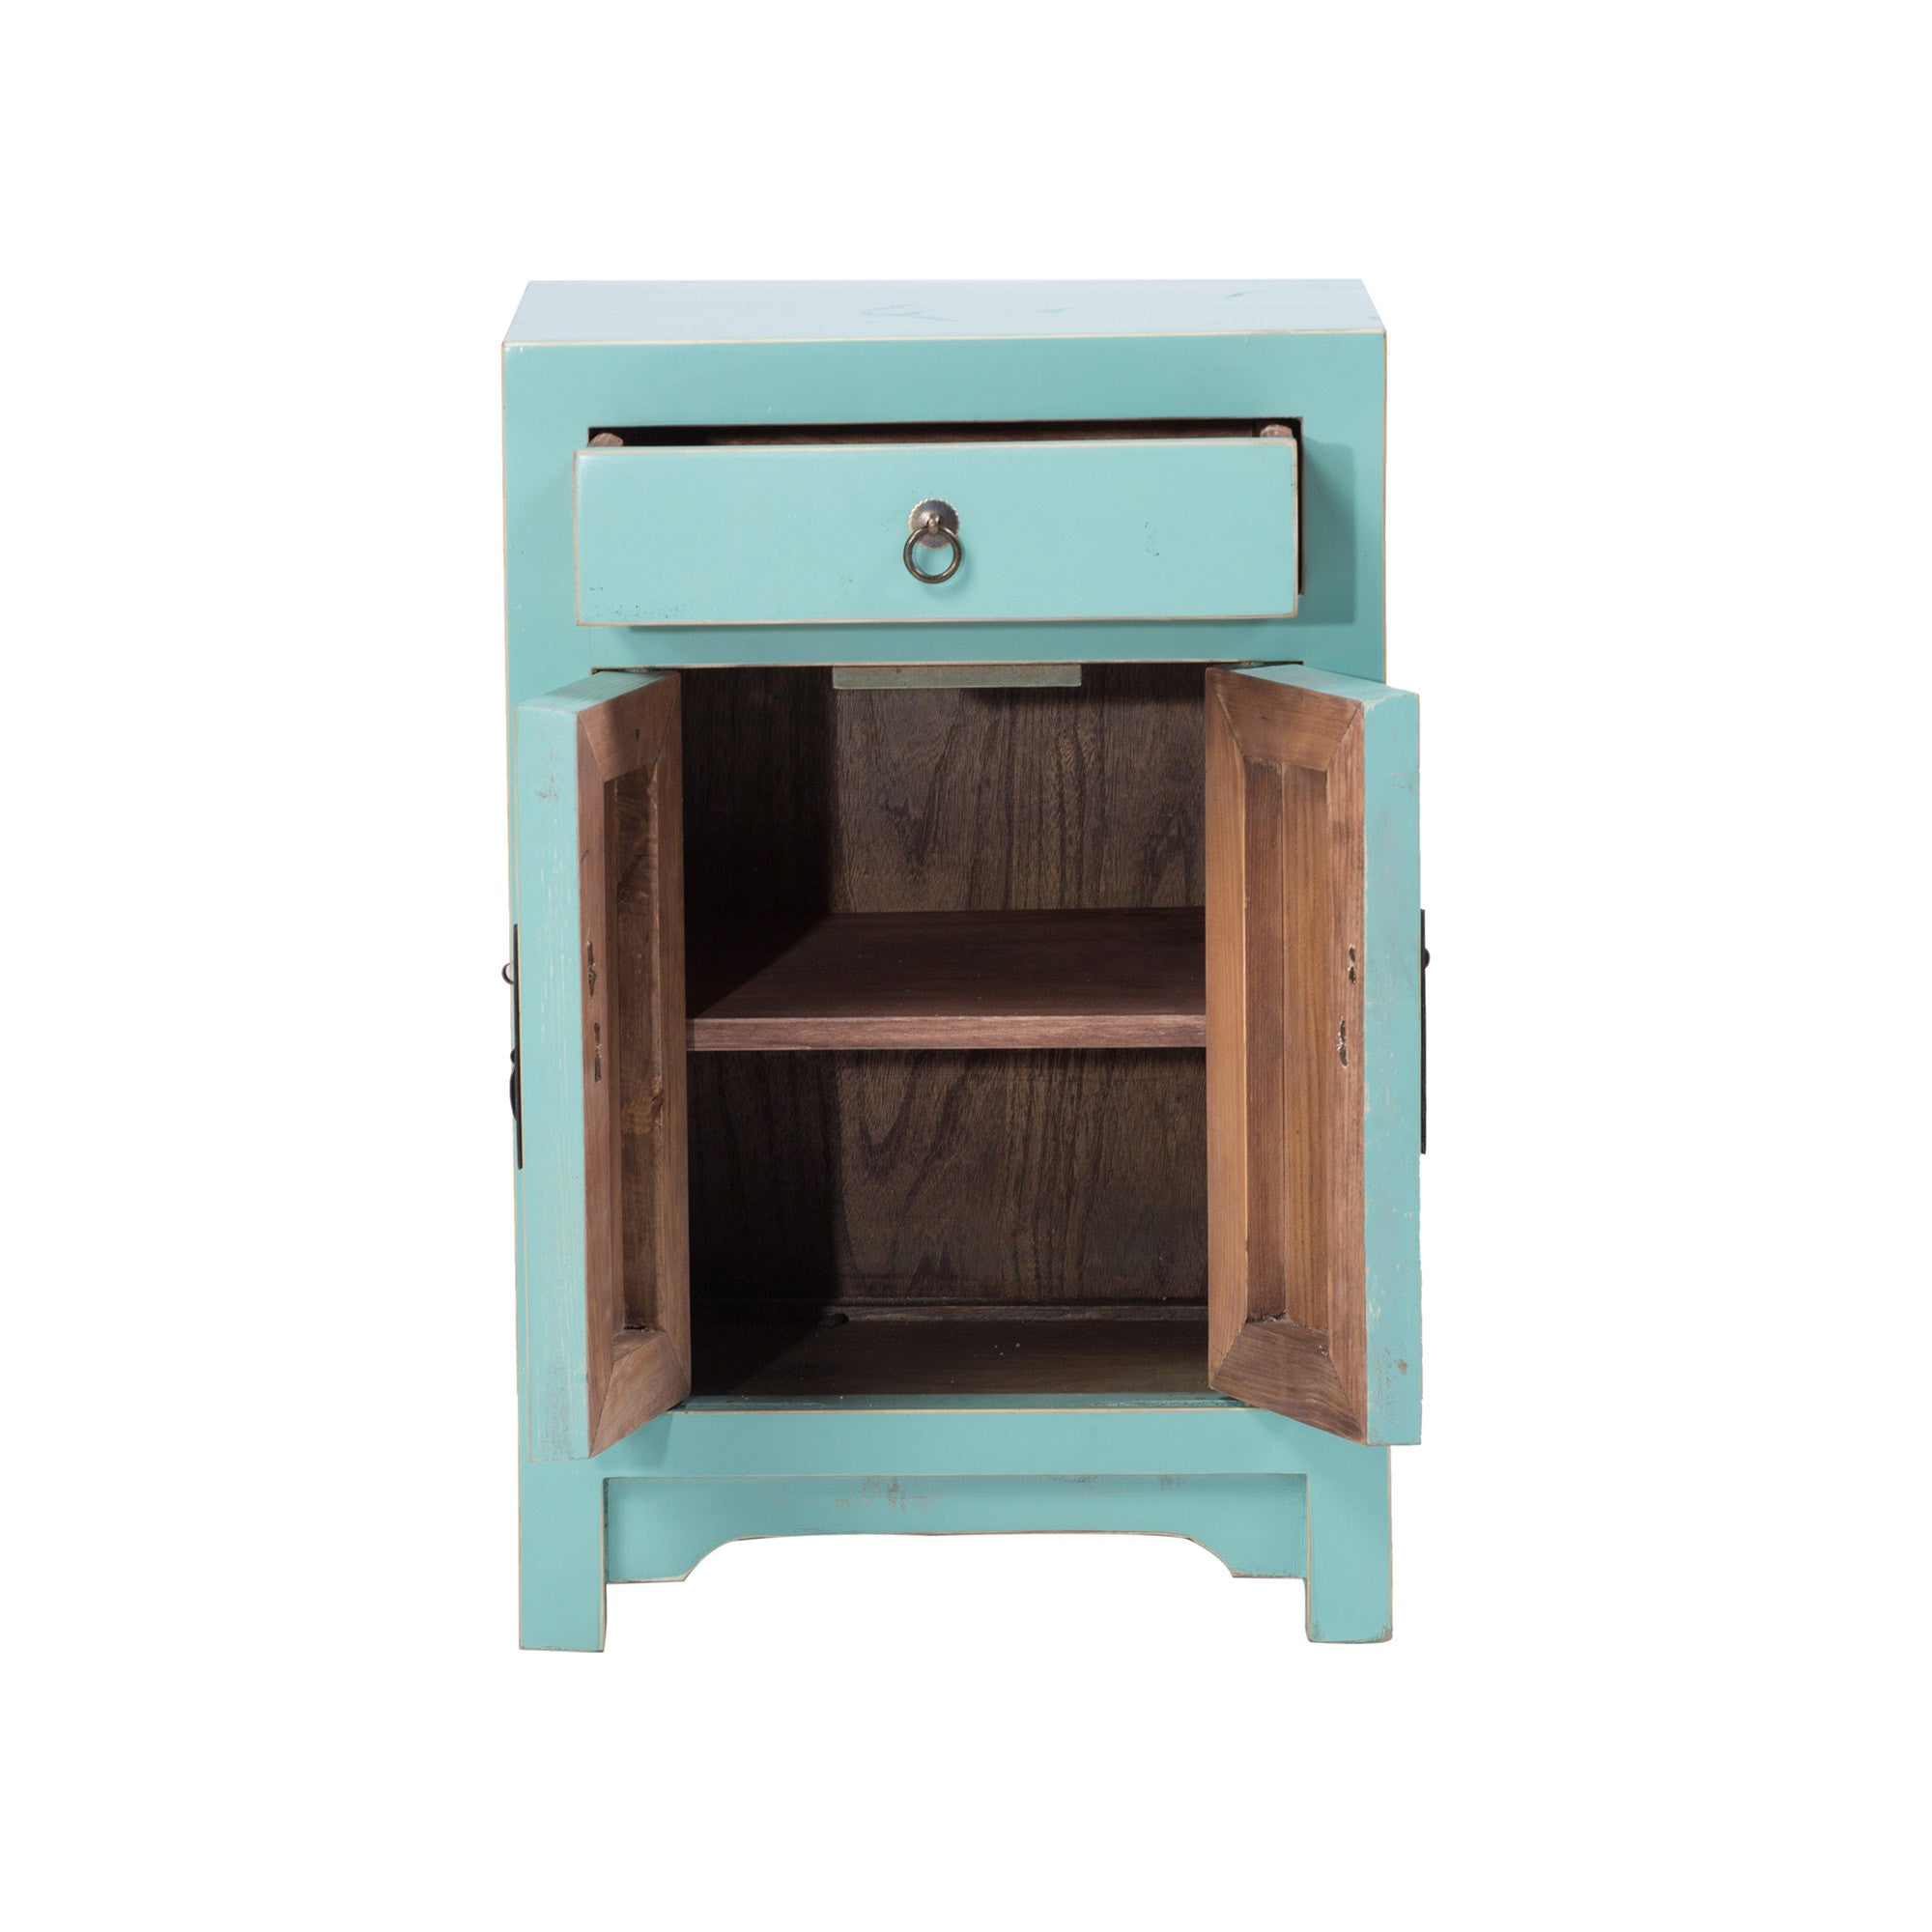 Chinese Bedside Cabinet ShanDong Style drawer and doors open